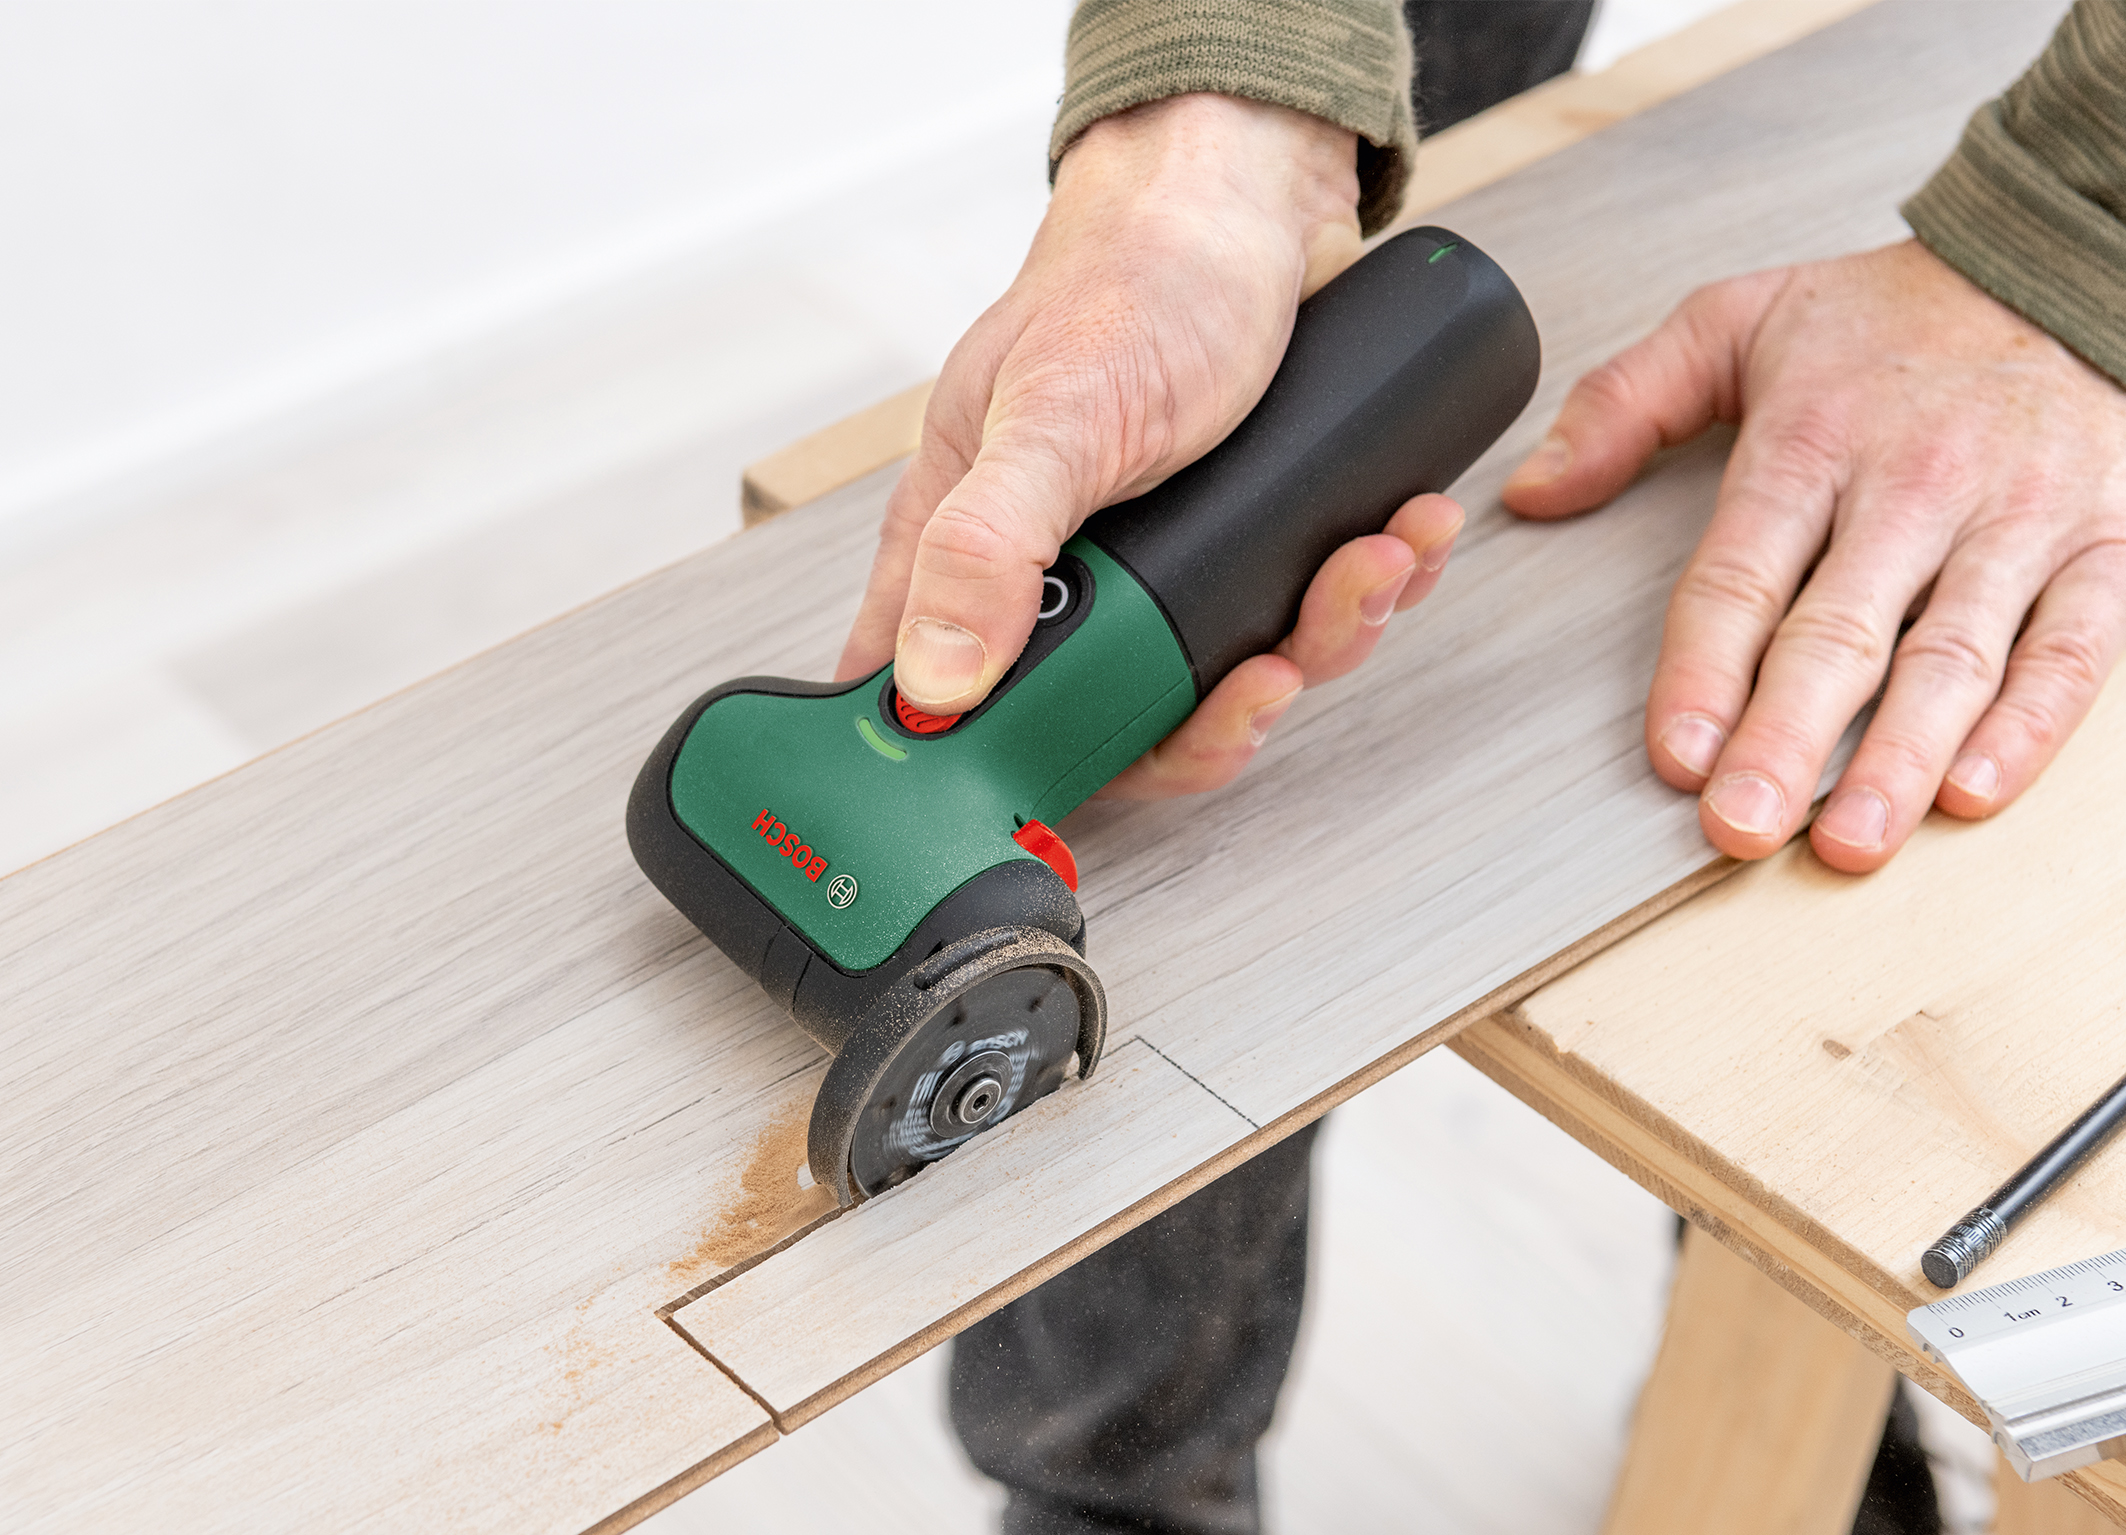 The ideal helper for many DIY projects: The EasyCut&Grind from Bosch